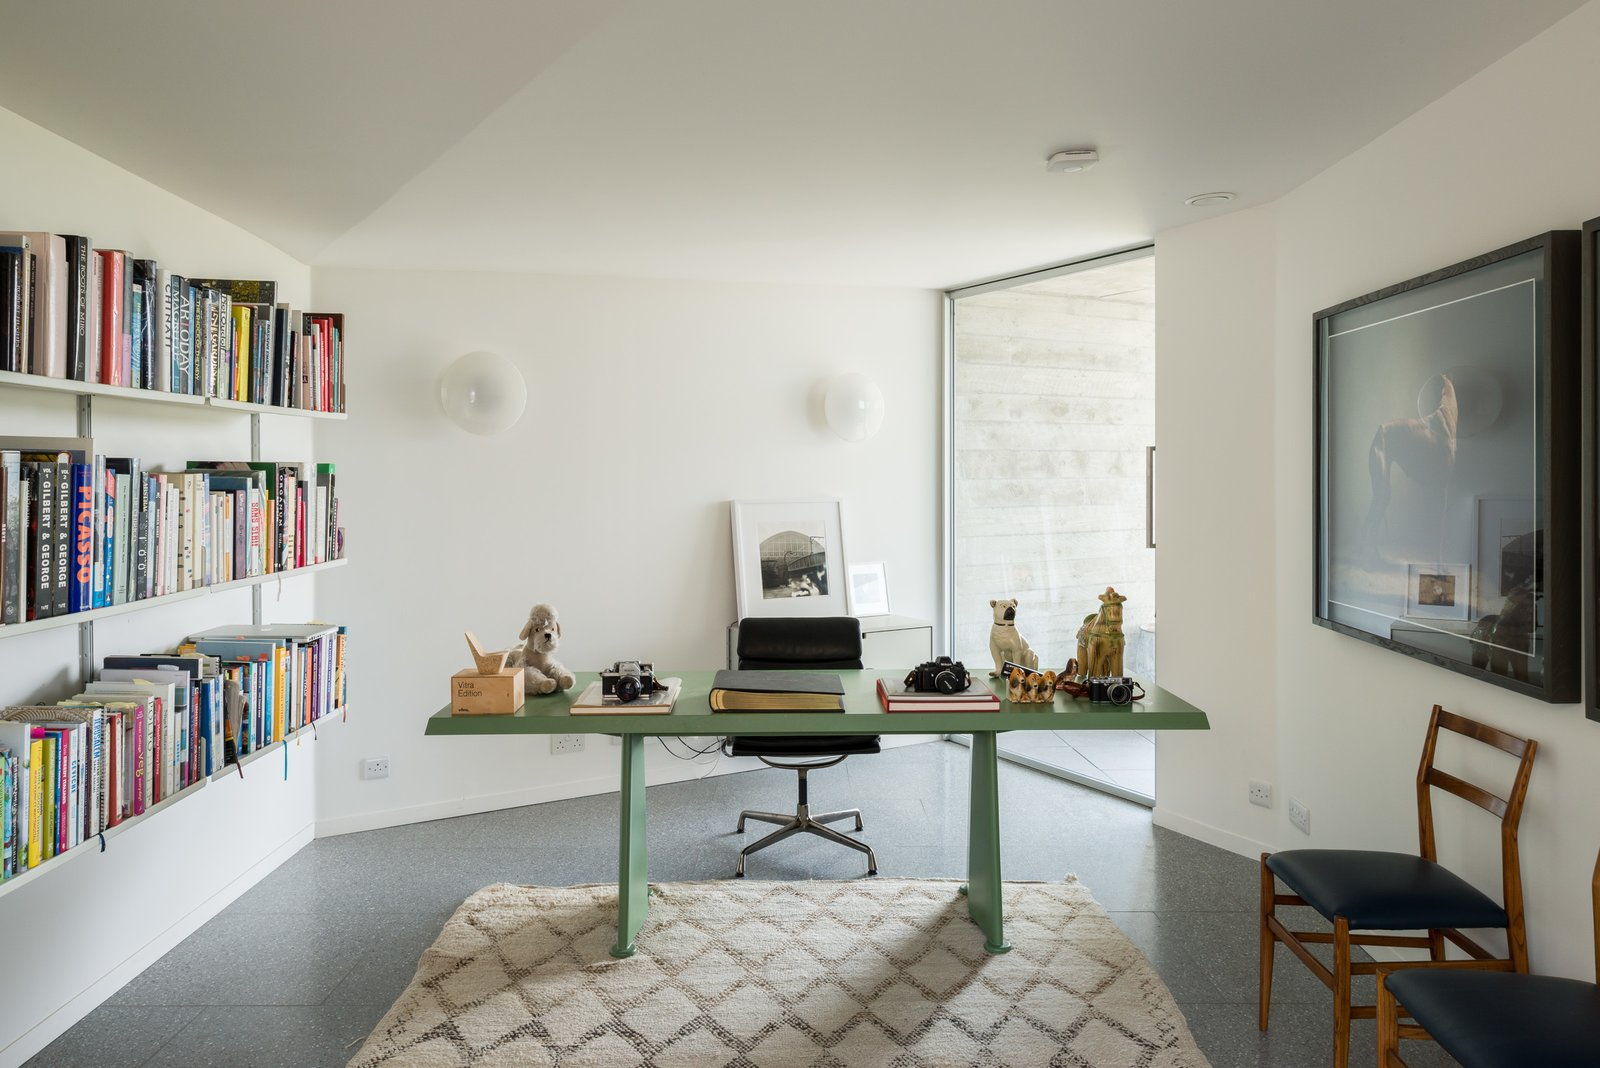 Office, Shelves, Library, Chair, Study, Desk, and Terrazzo  Office Terrazzo Photos from Explore a Prefabricated House For Sale in England That's Clad With Cor-Ten Steel